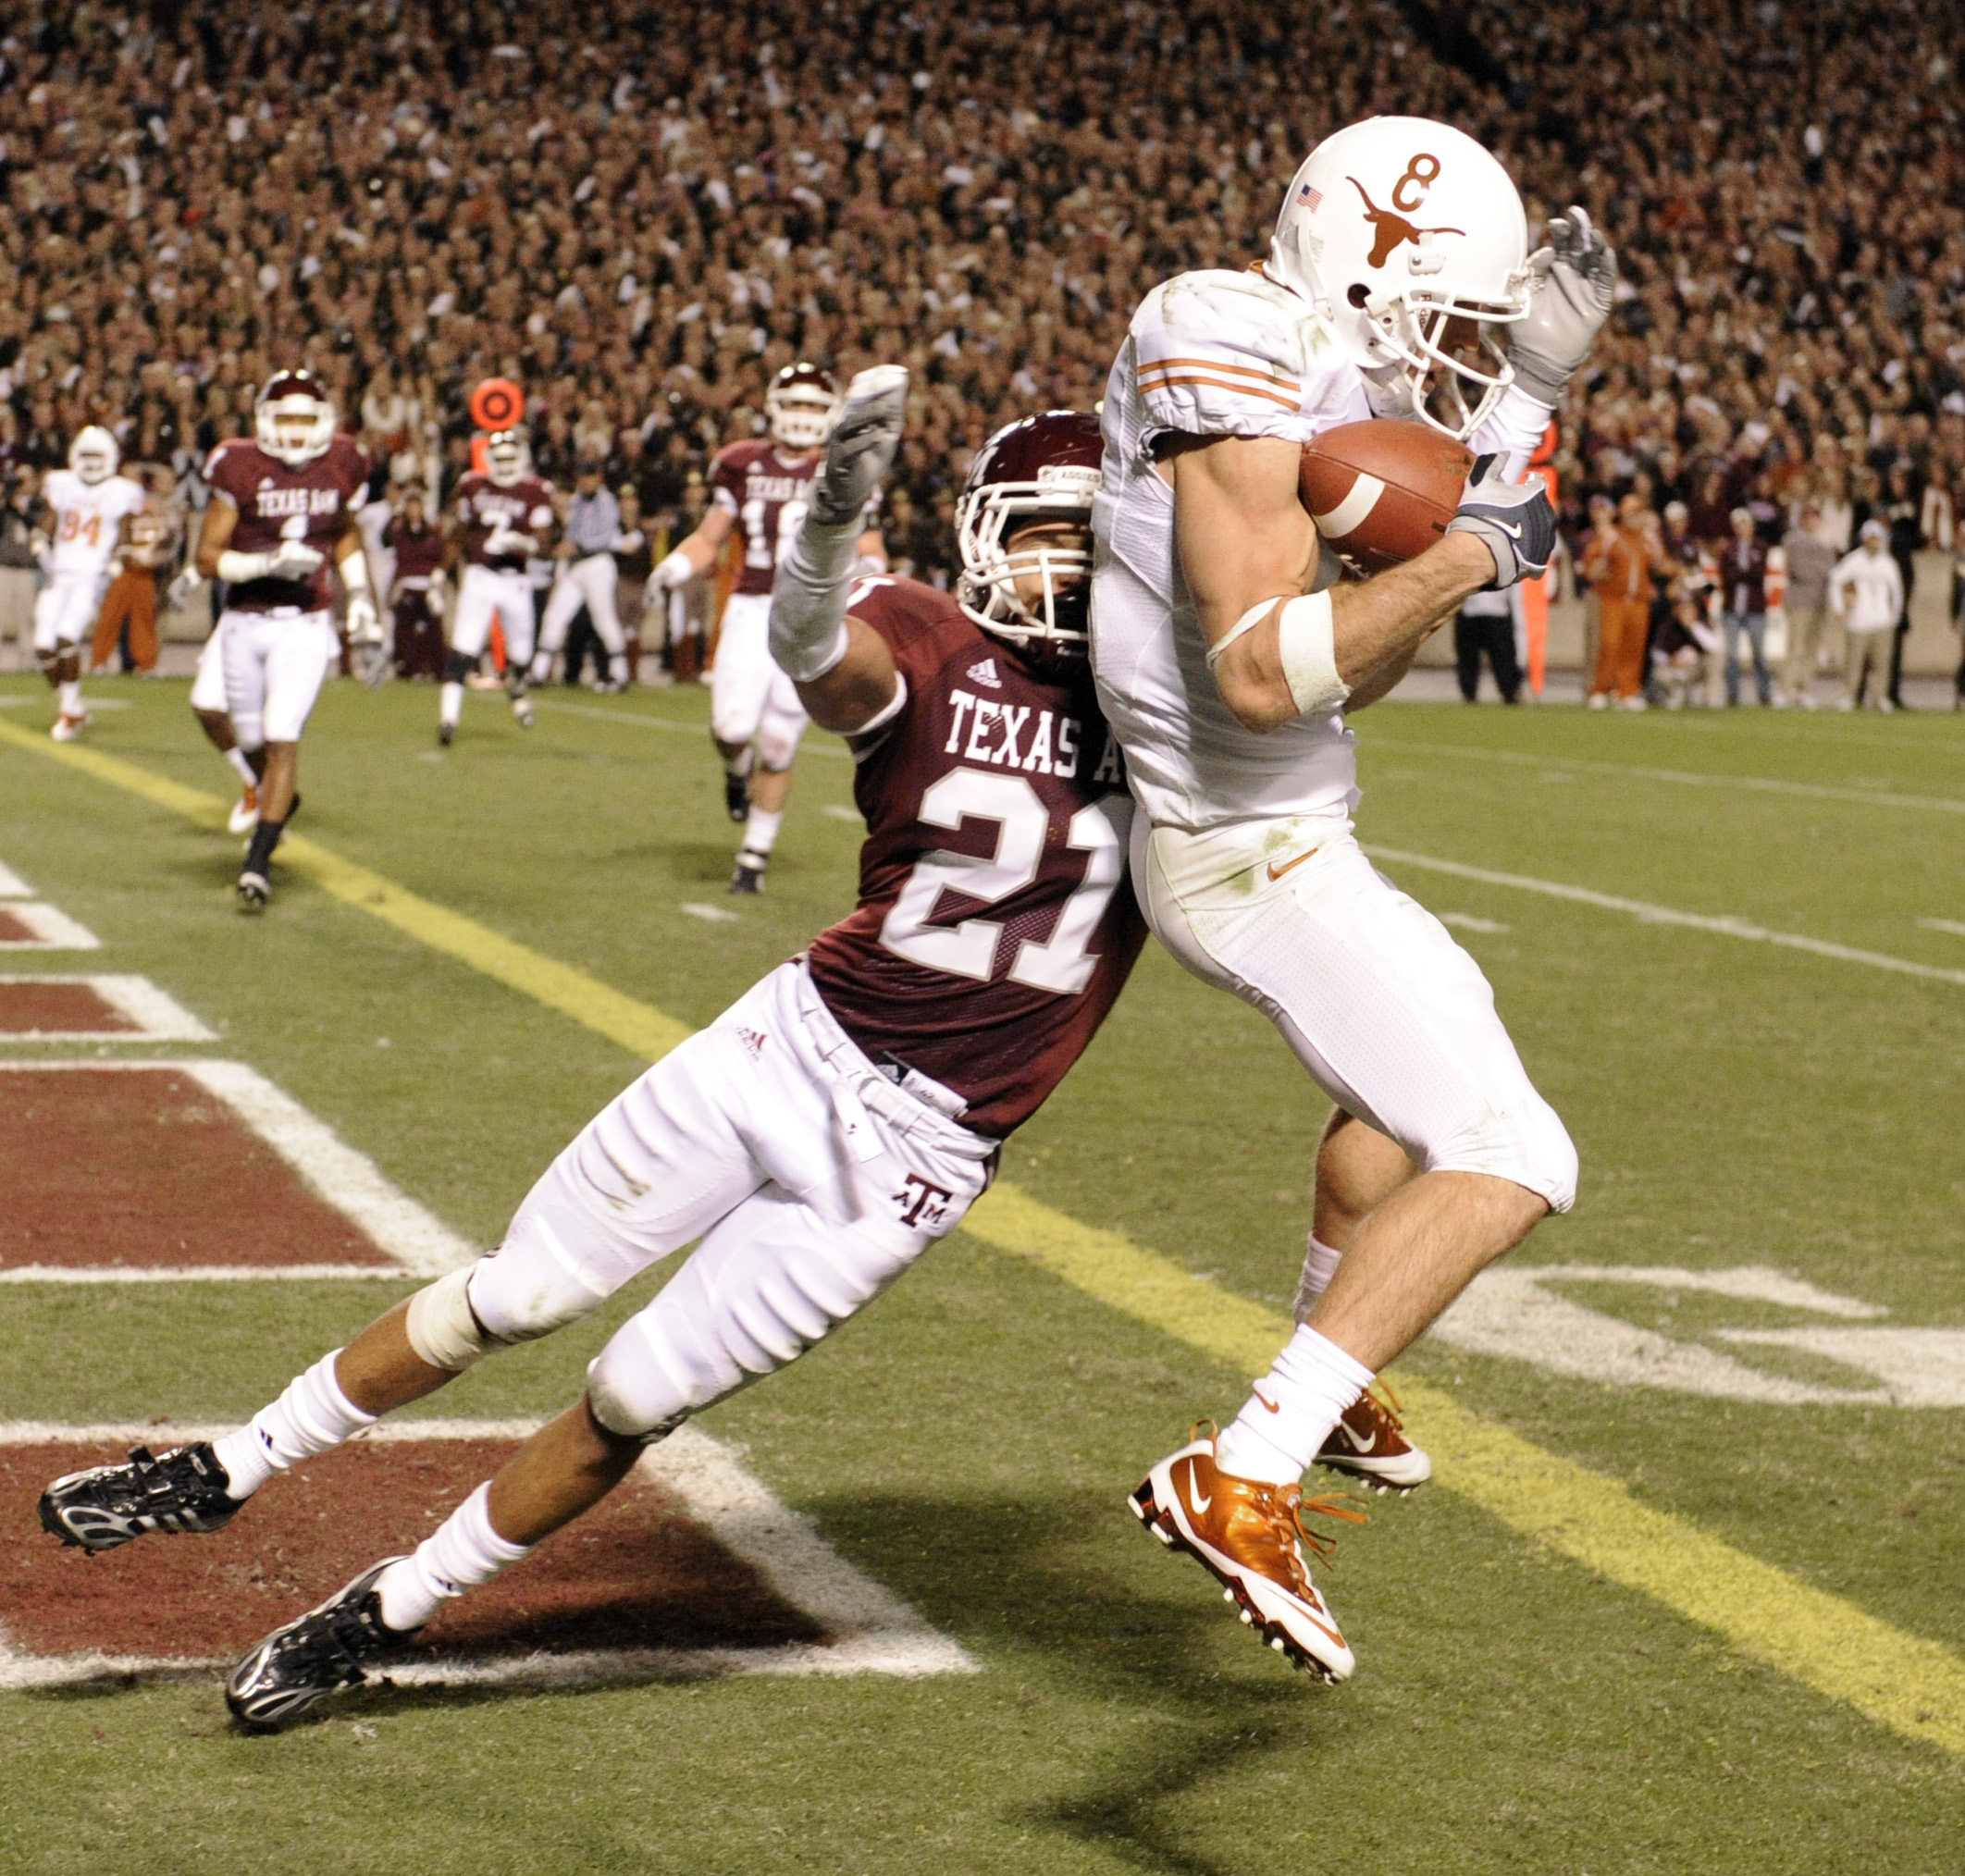 Texas wide receiver Jordan Shipley (8) catches a pass for a touchdown as Texas A&M cornerback Justin McQueen (21) defends during the first quarter of an NCAA college football game Thursday, Nov. 26, 2009, in College Station, Texas. (AP Photo/Dave Einsel)